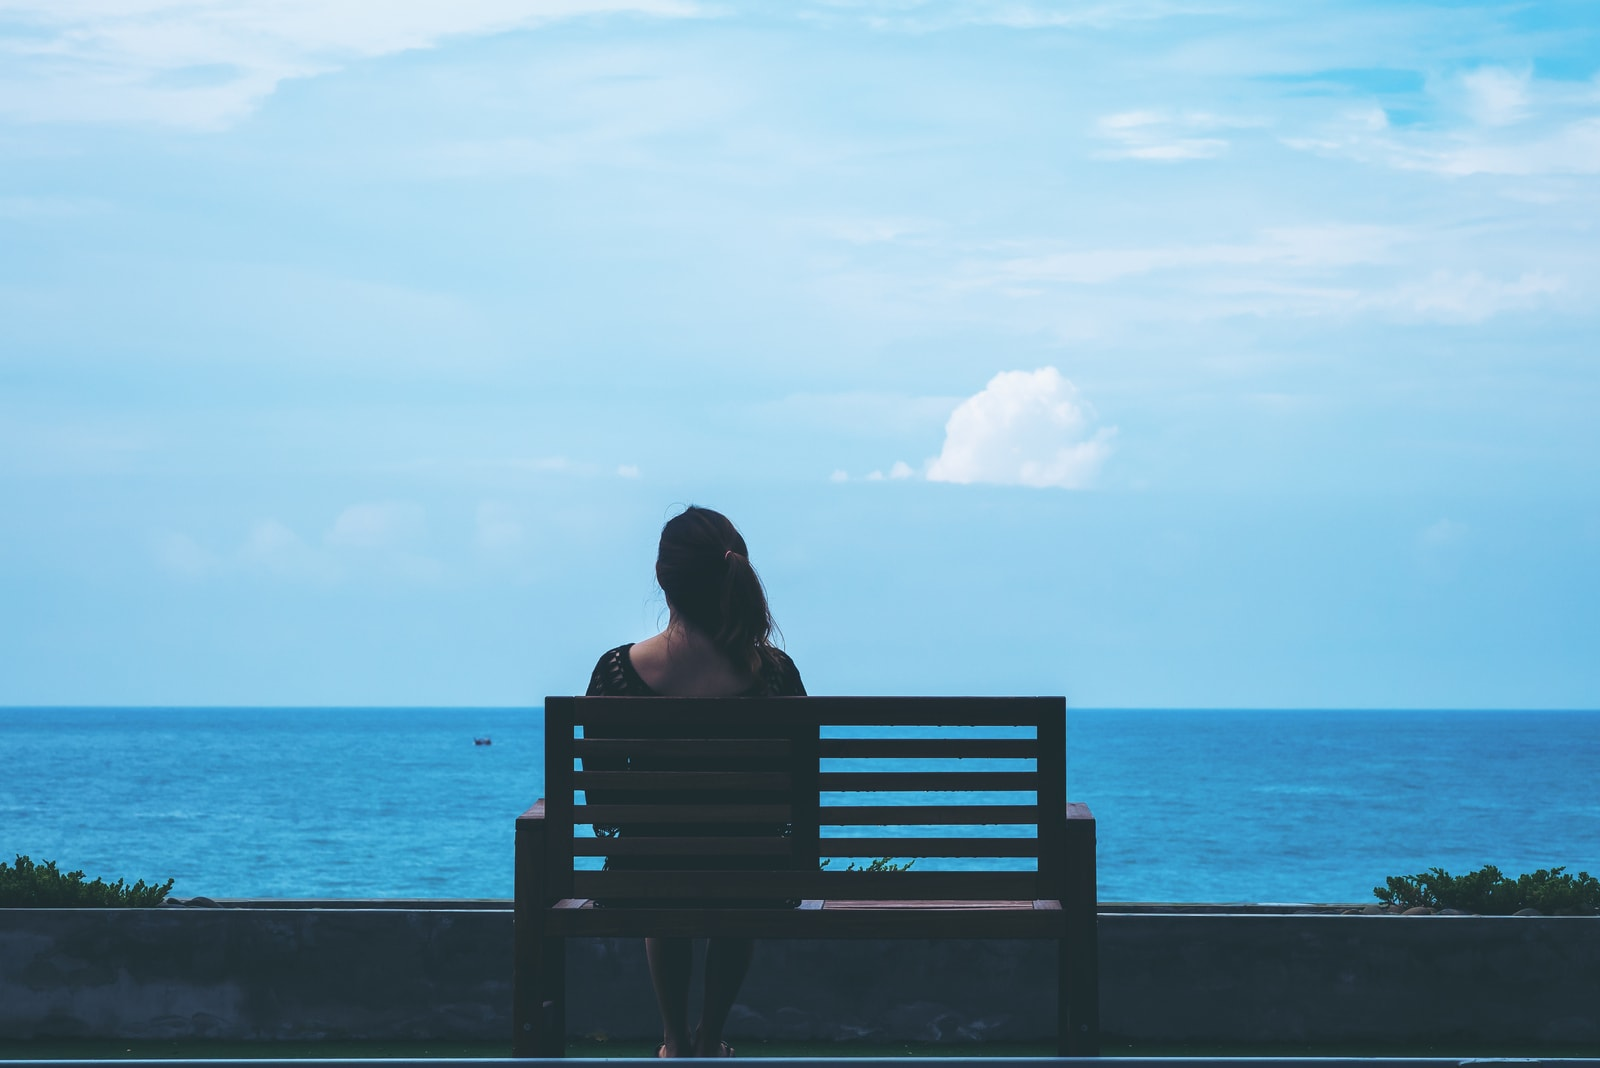 woman sitting on the bench alone